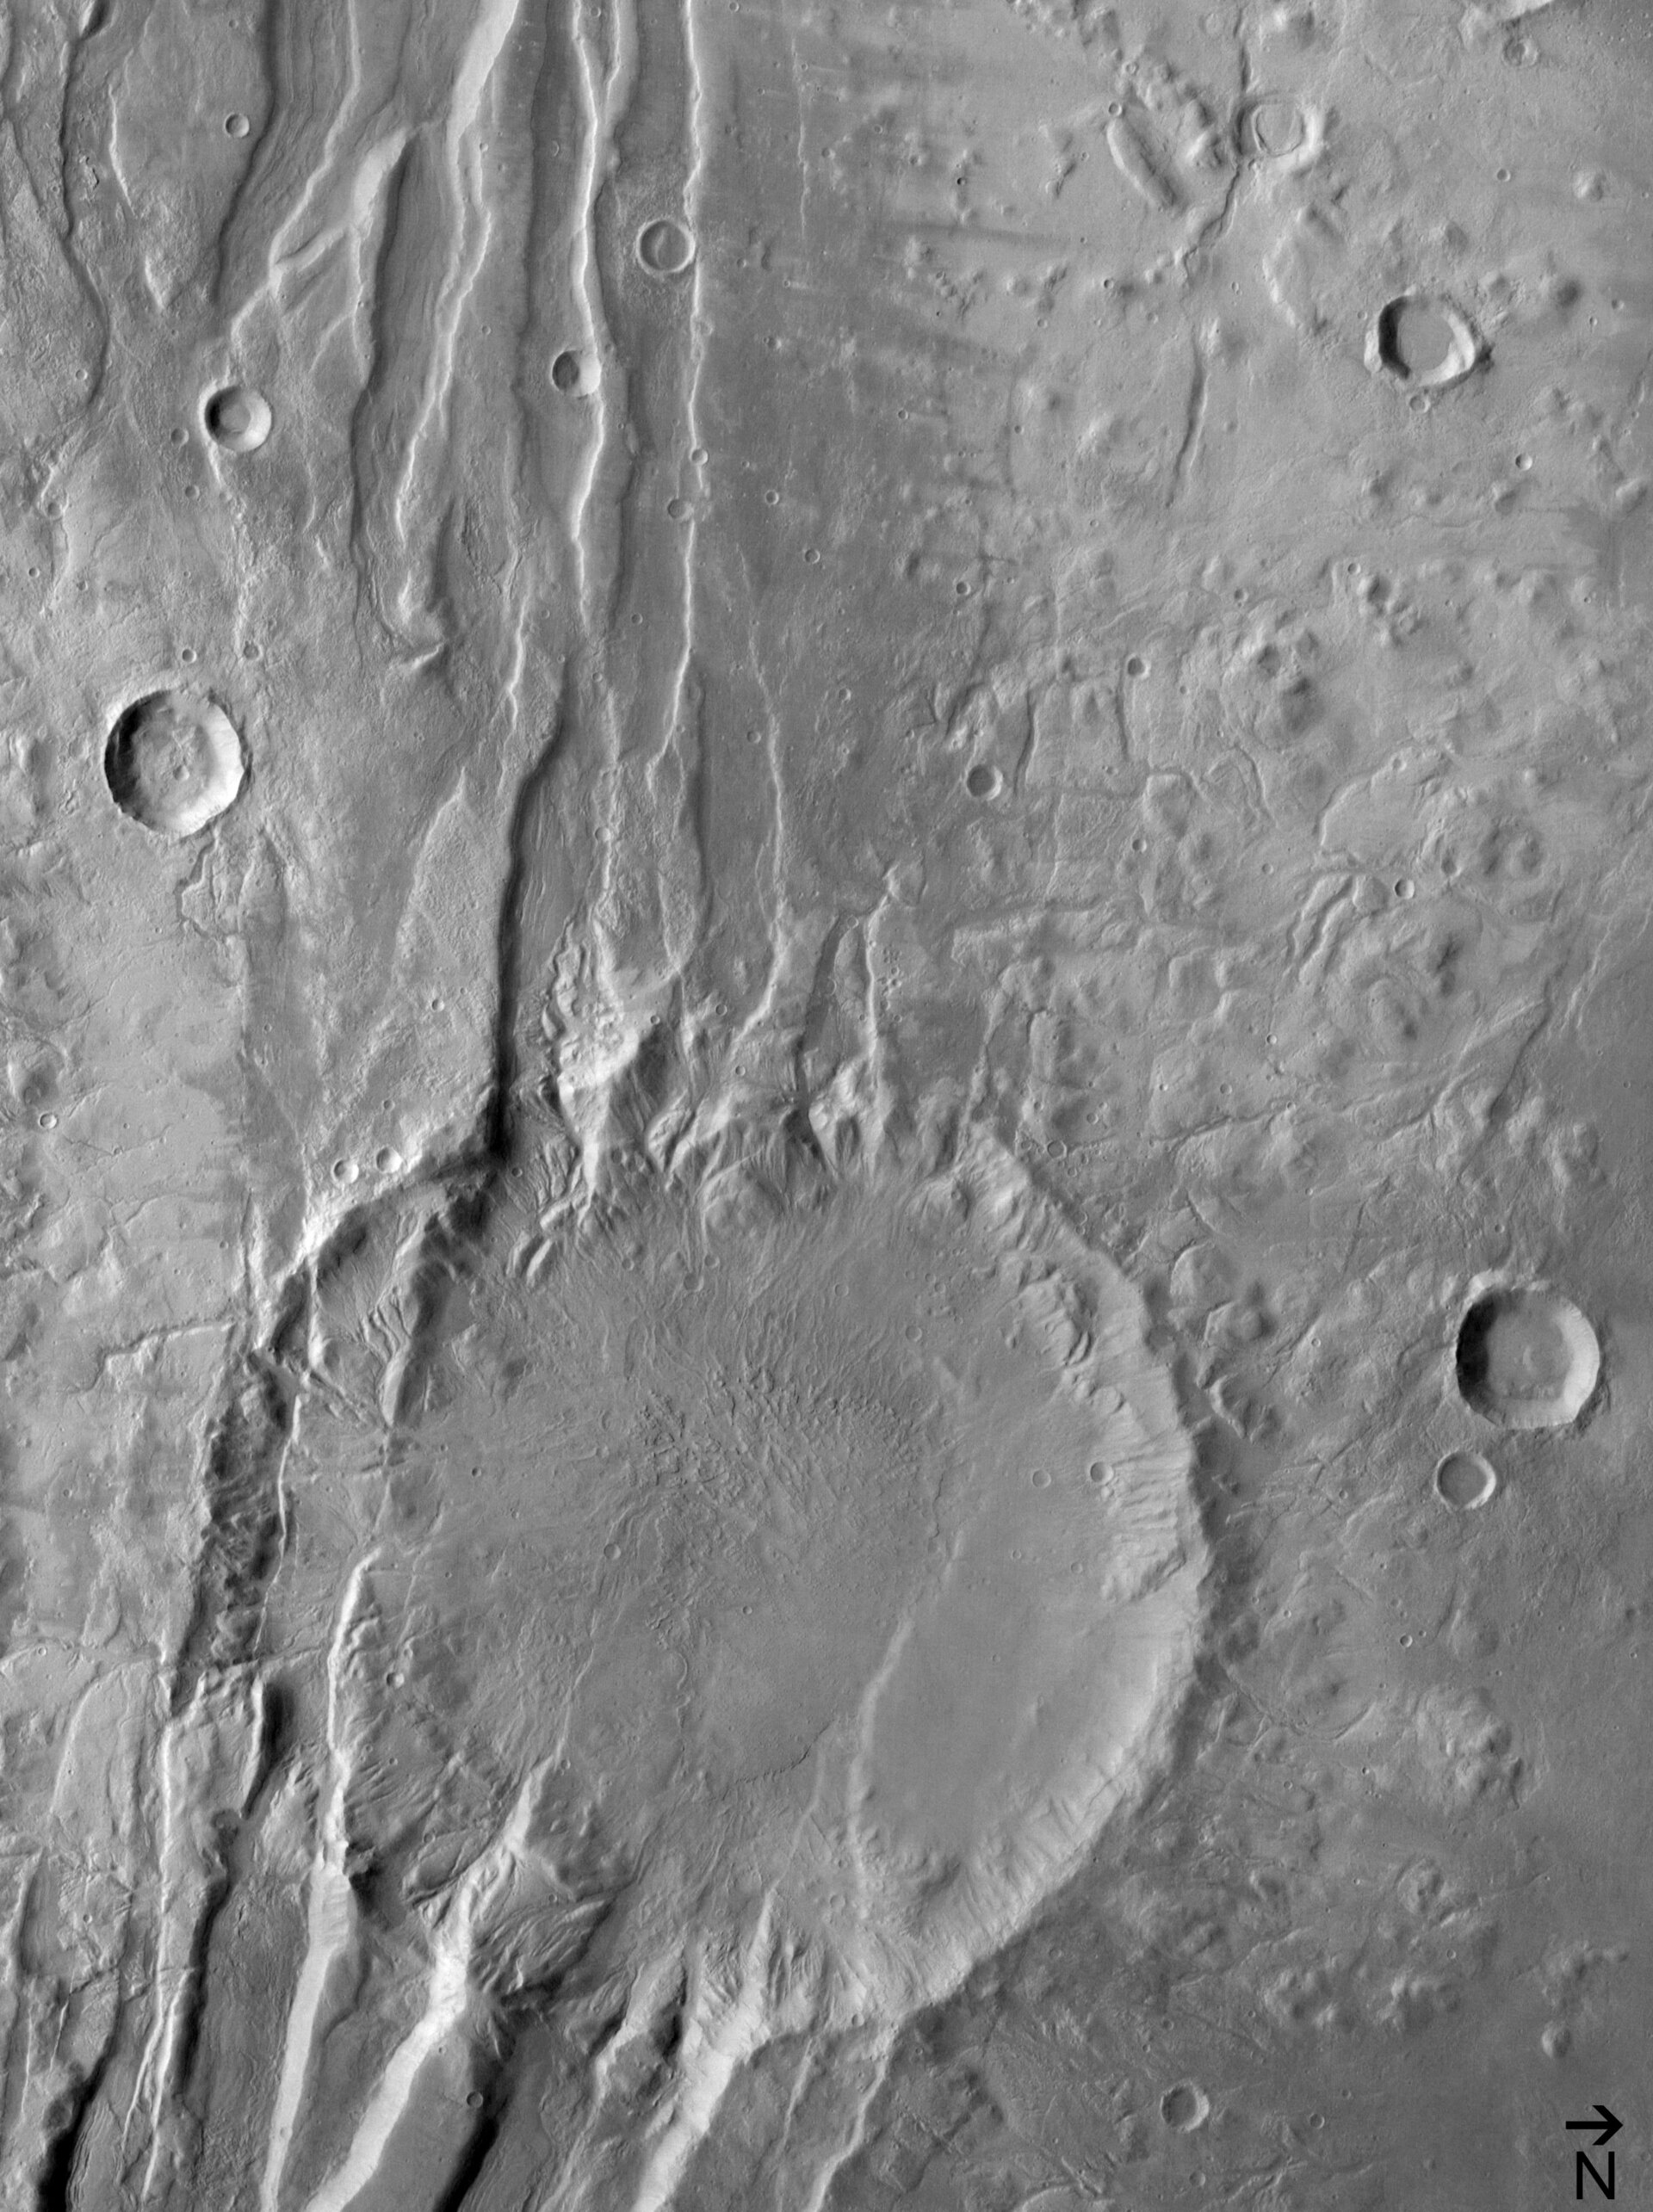 (5) Disrupted crater at Acheron Fossae in black/white